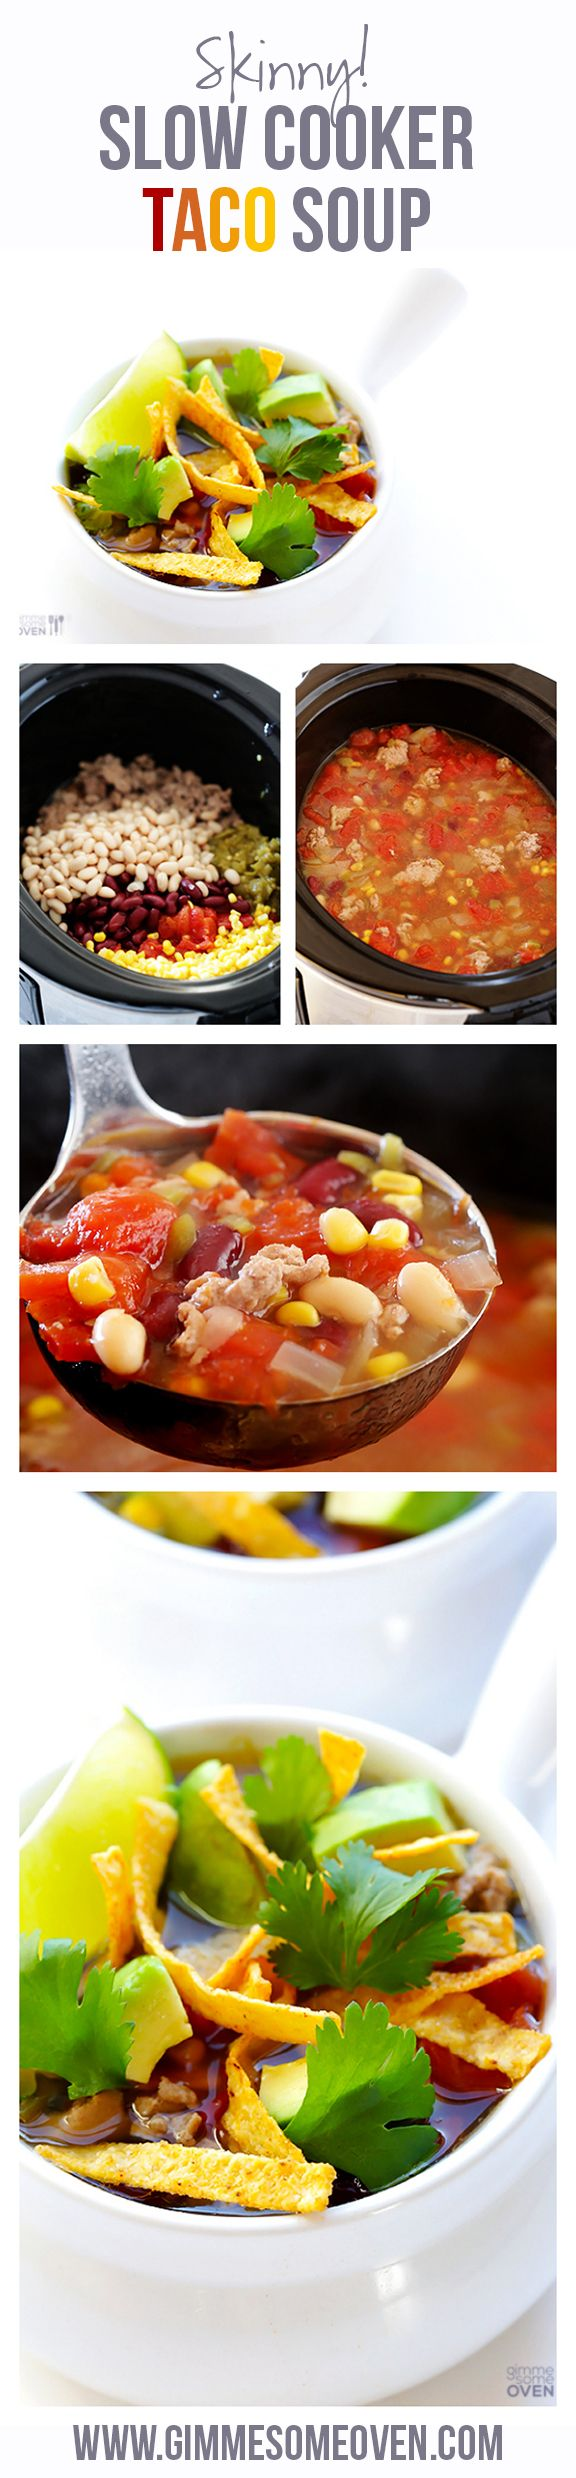 ... Healthy Crockpot Chicken Soup, Slow Cooker, Cooker Tacos, Skinny Slow